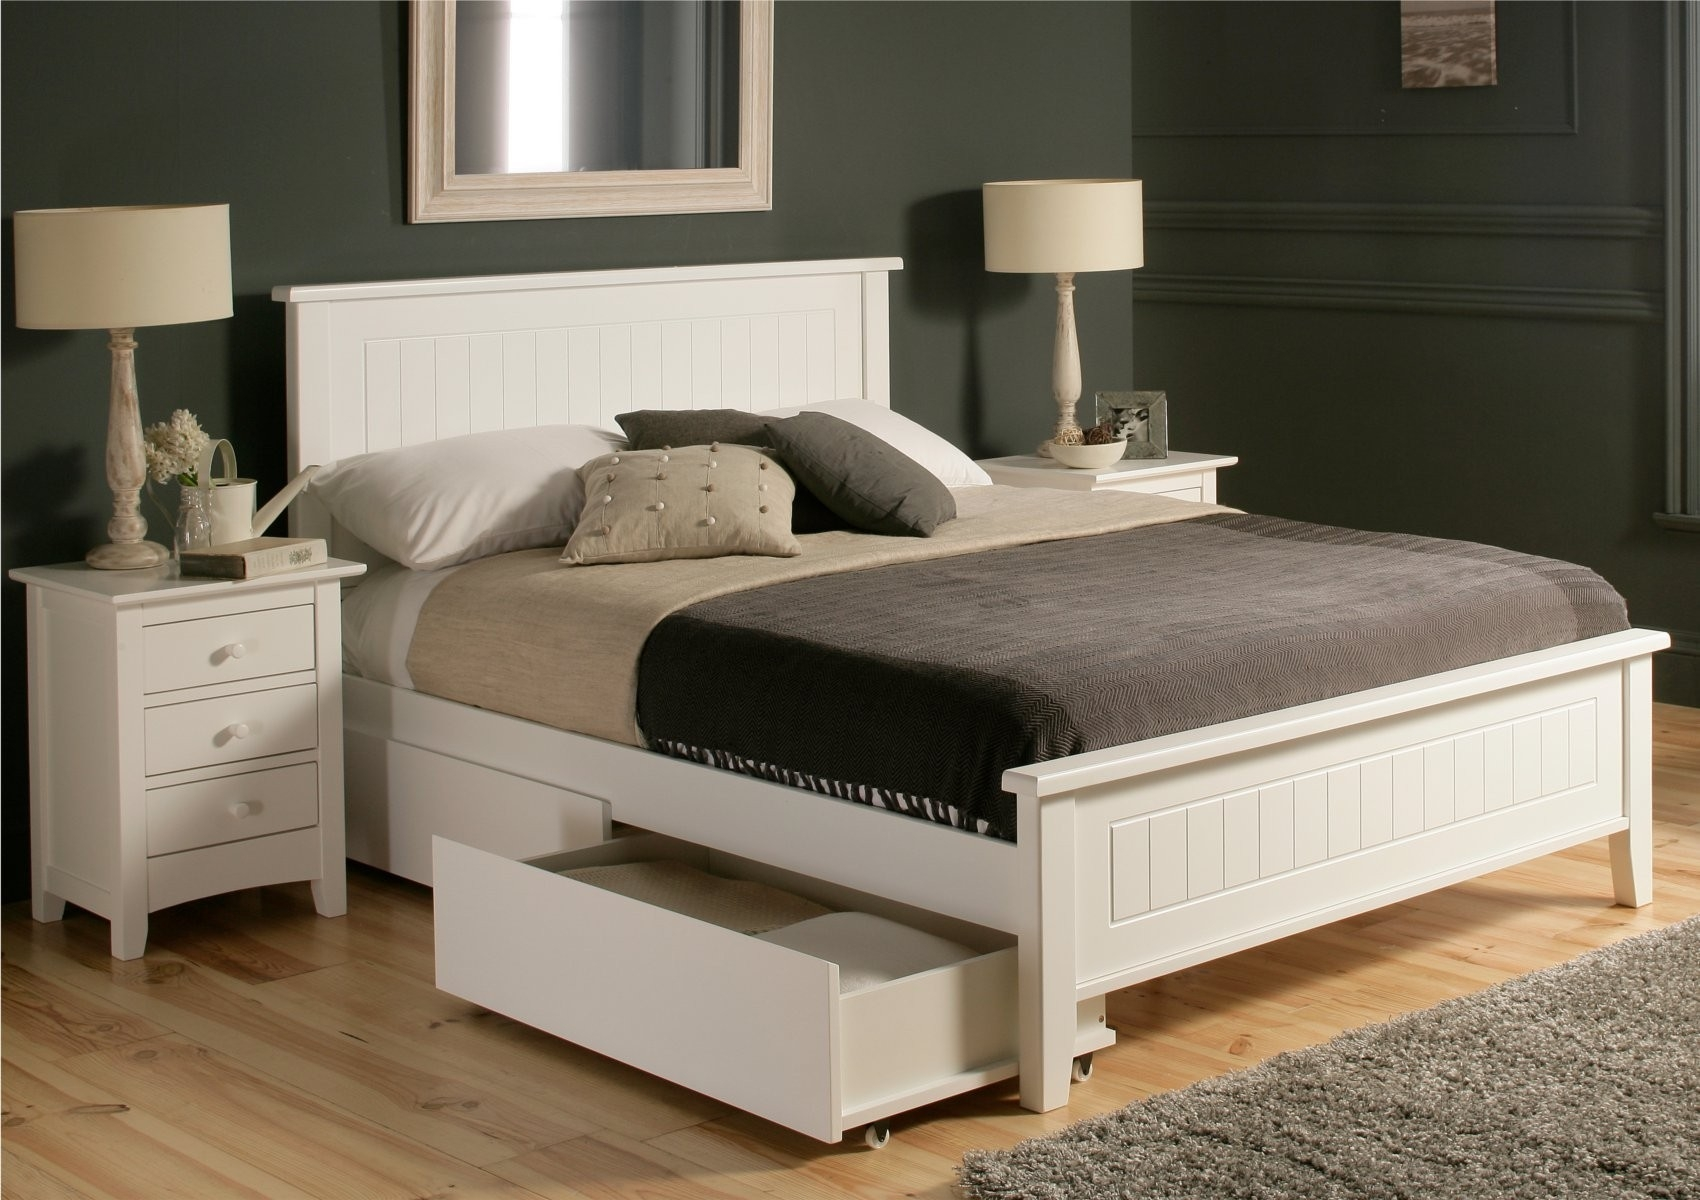 Wood Queen Bed Frame With Storage